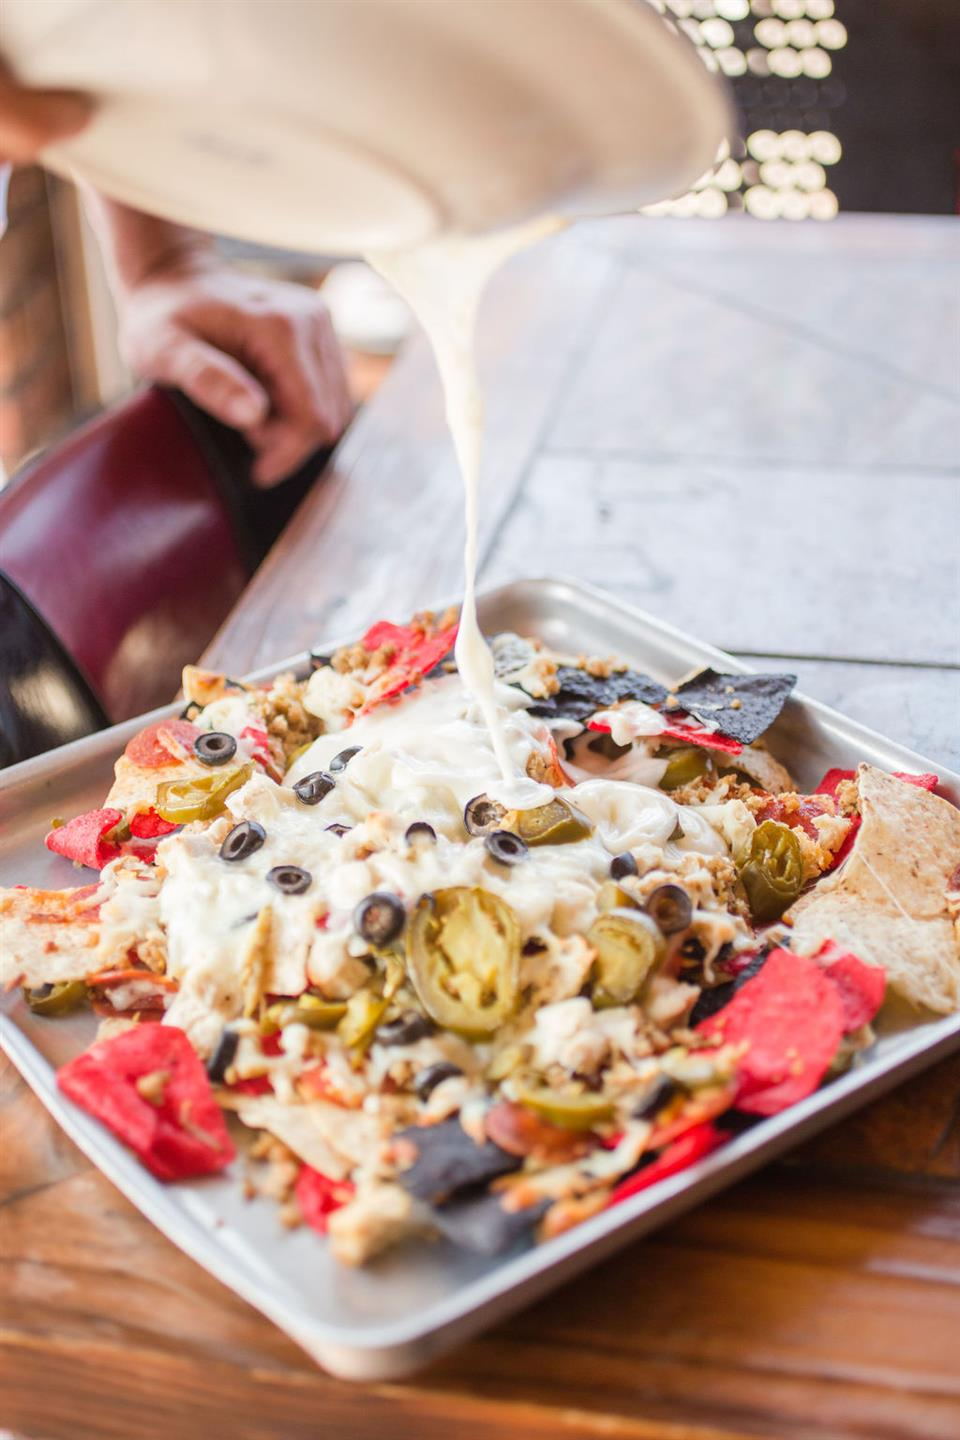 extra cheese being poured onto nachos with chips, jalapenos, olives and cheese